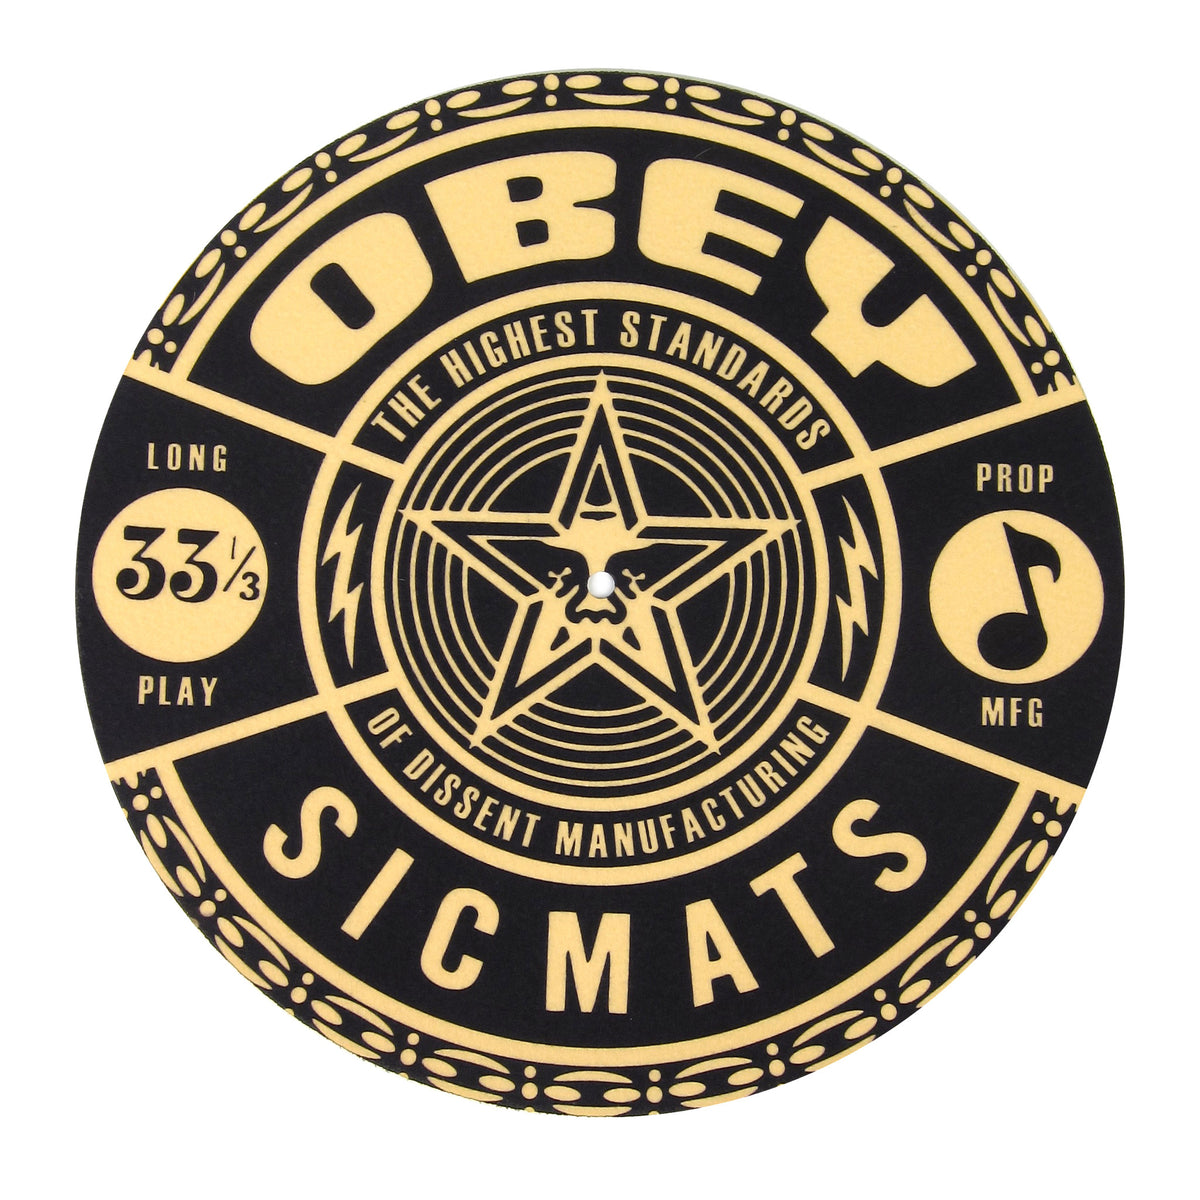 Sicmats: Obey Slipmats (Pair) - Black / Tan